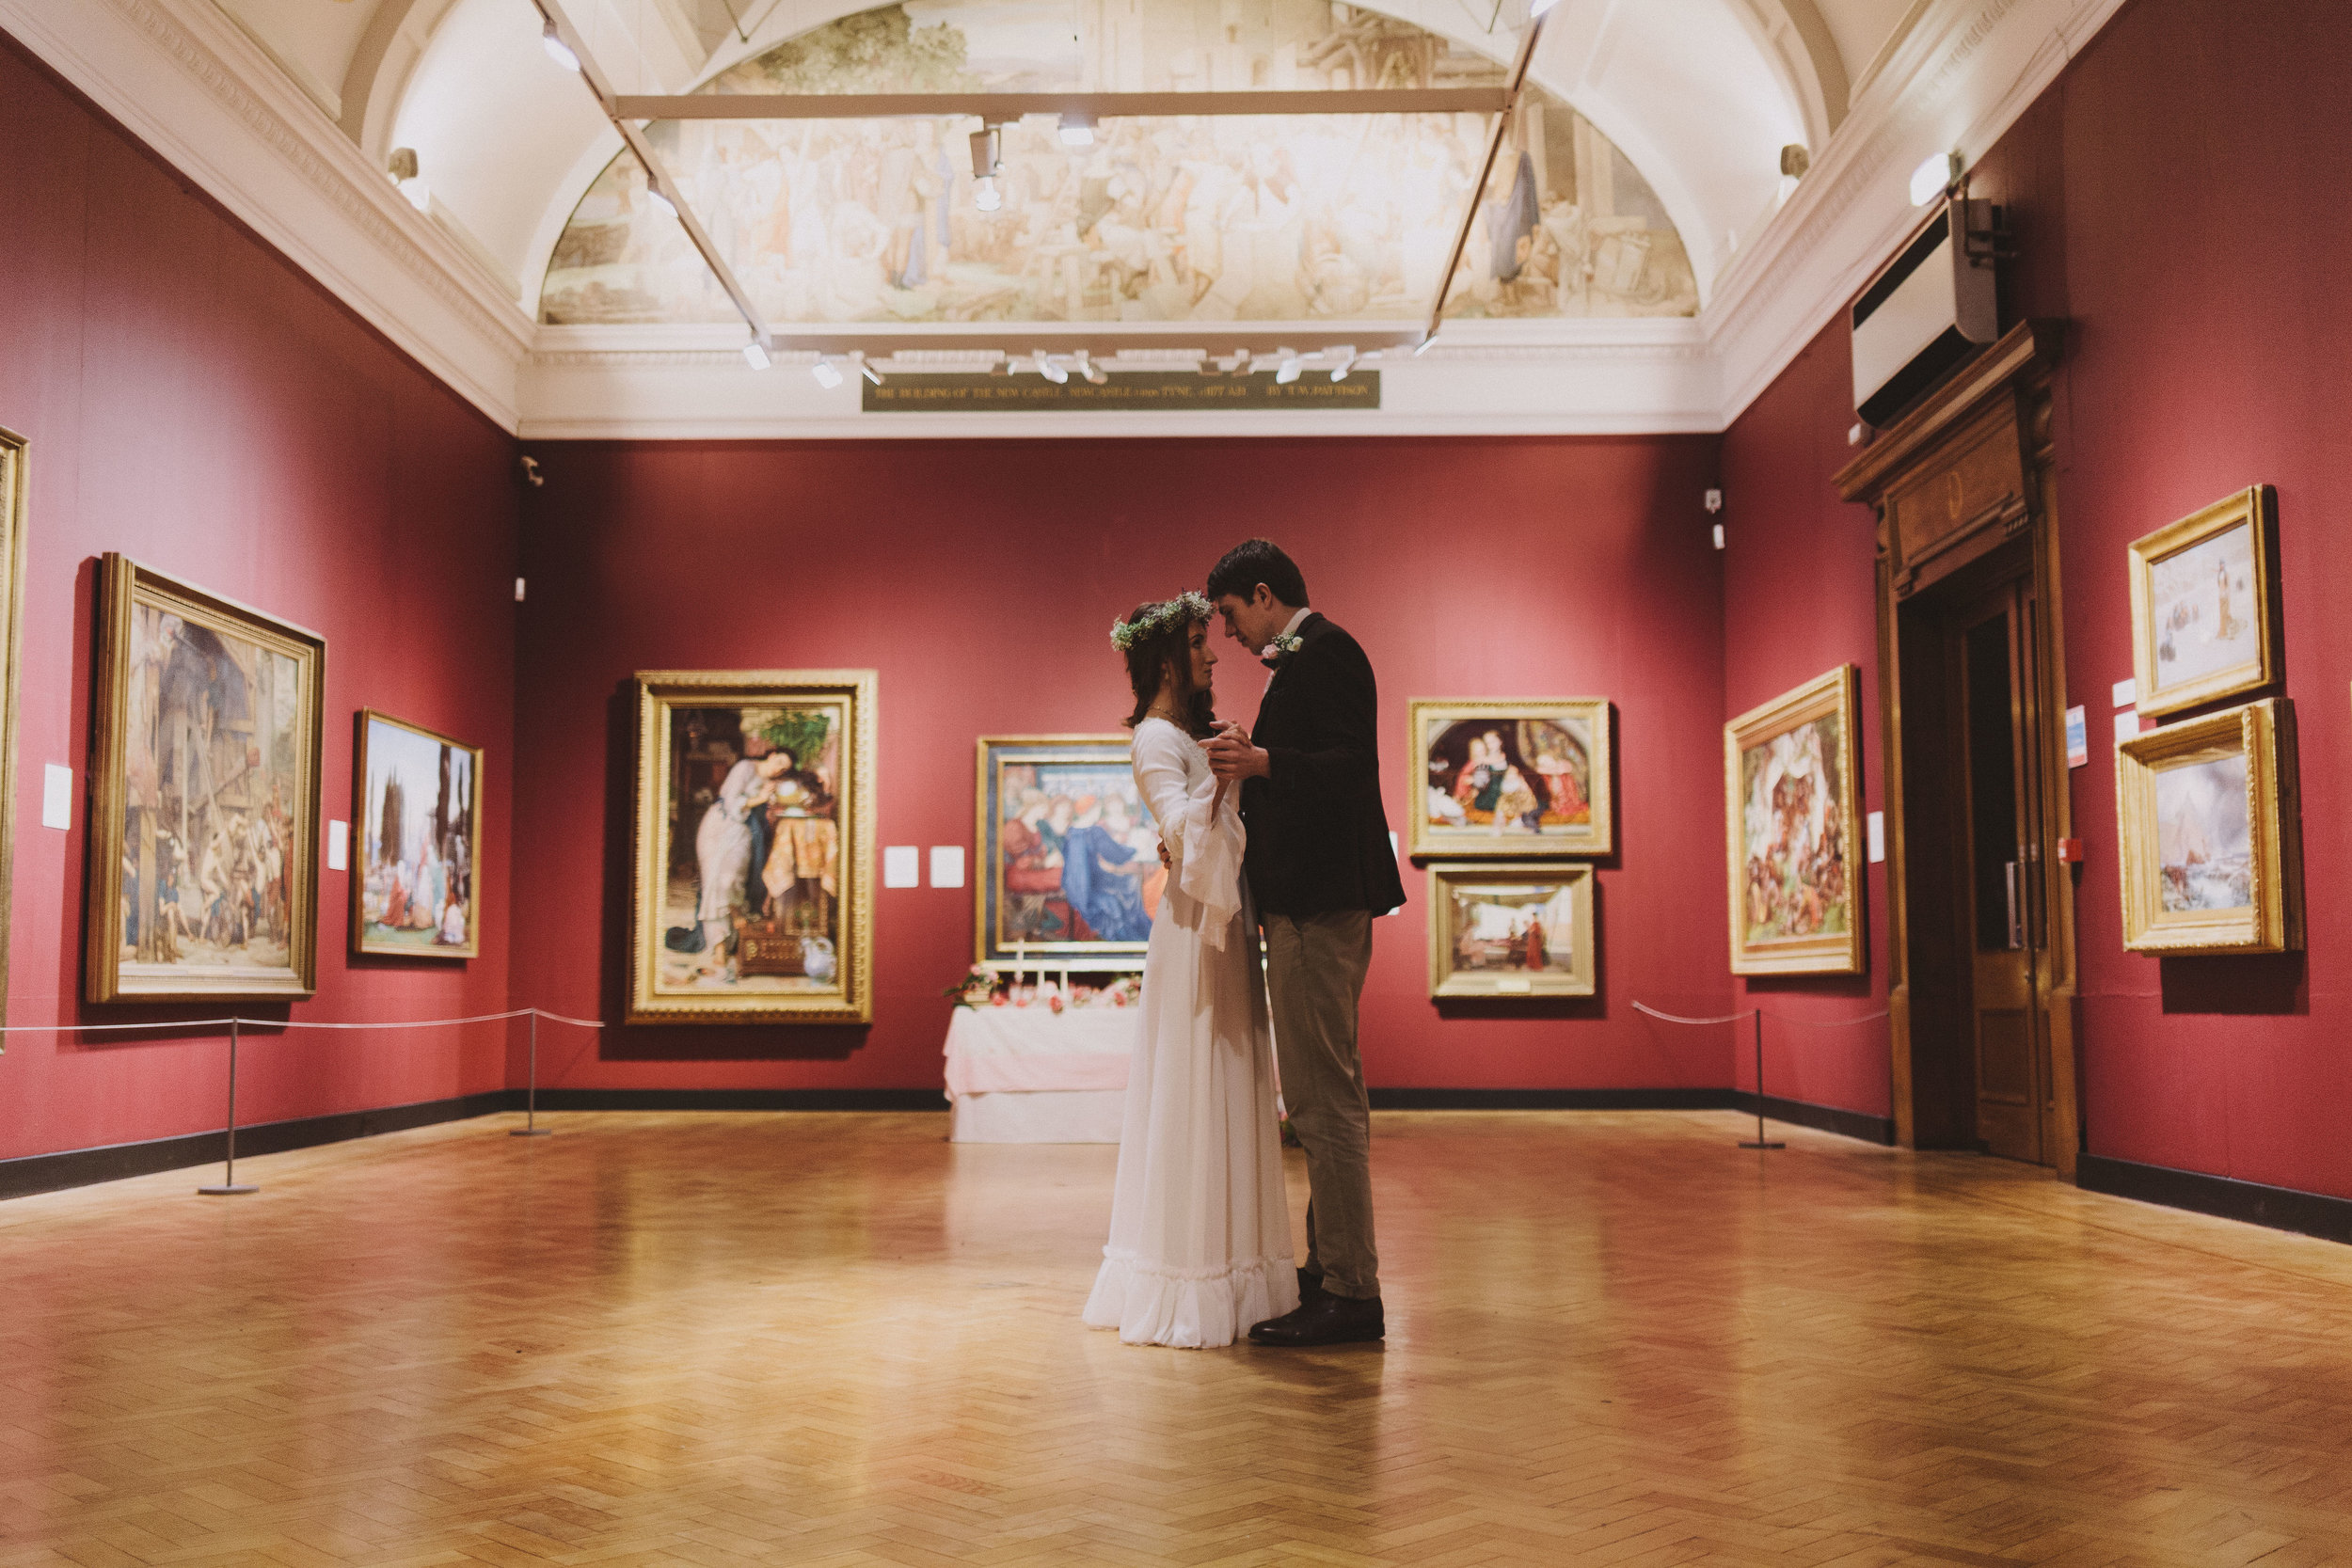 The Laing Art Gallery in Newcastle is the ultimate alternative wedding venue for art lovers.